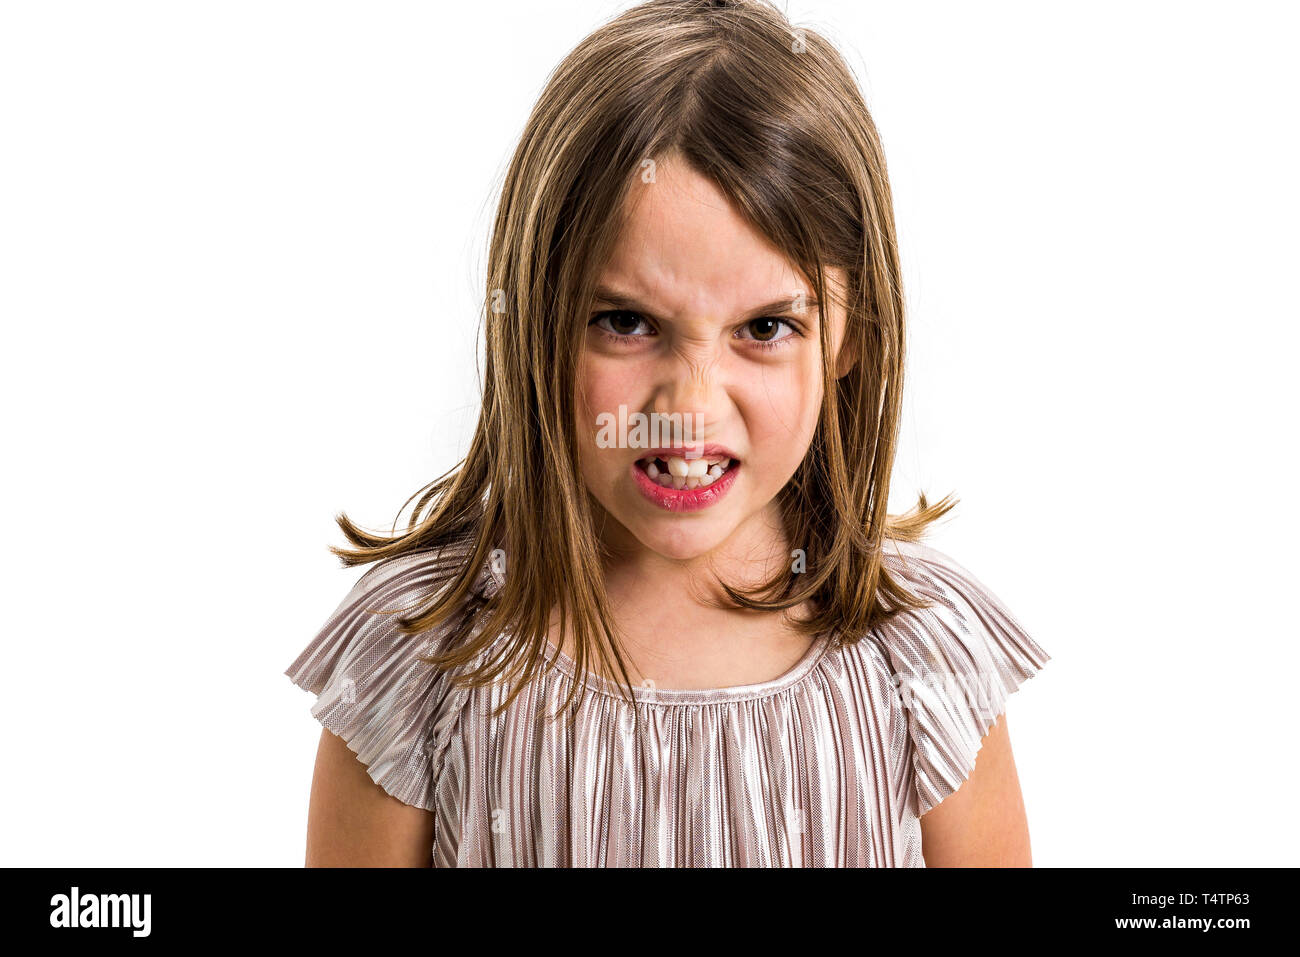 Little young girl is angry, mad, disobedient with bad behaviour. Children making the act of insubordination and disobedience, yelling, showing teeth,  - Stock Image